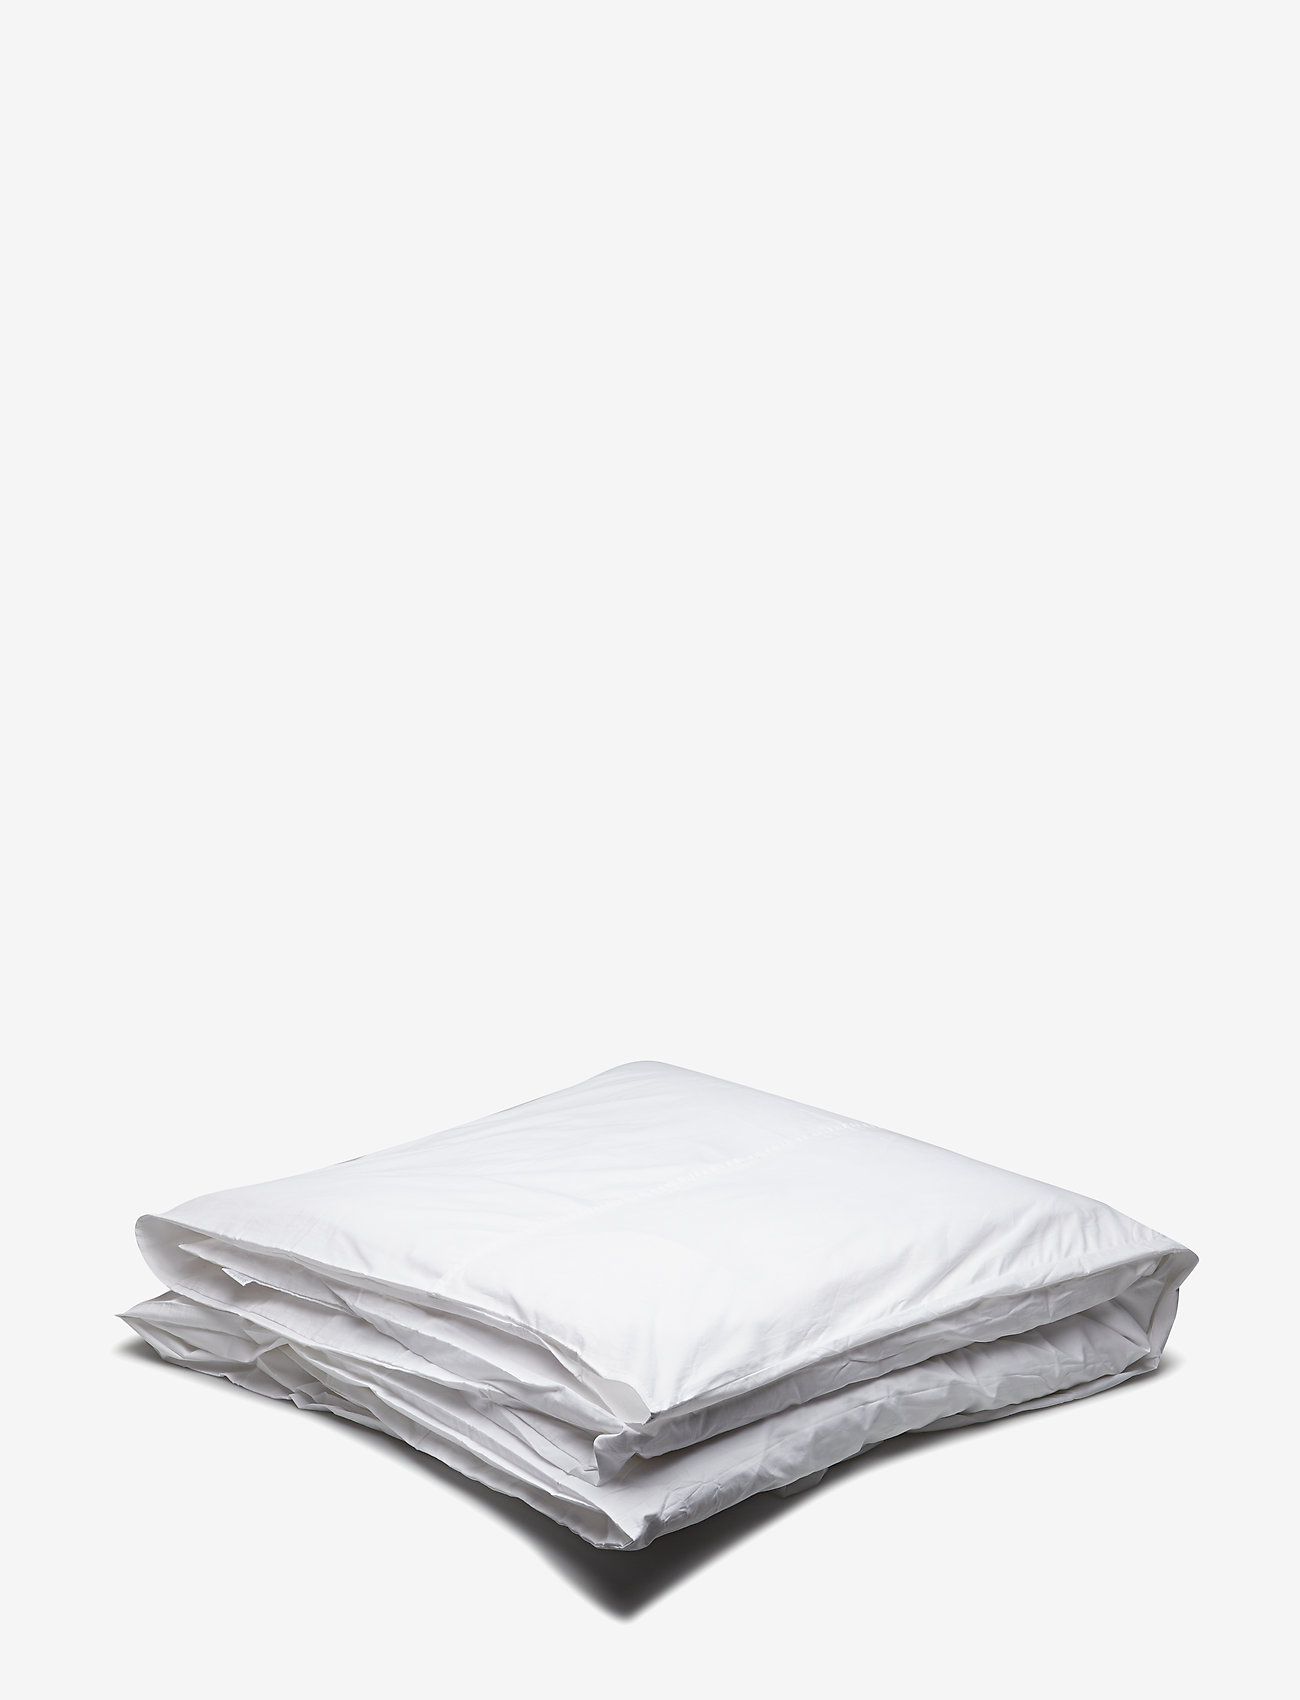 Gripsholm - QUILT COVER ECO PERCALE SELMA - tyynyt & peitot - white